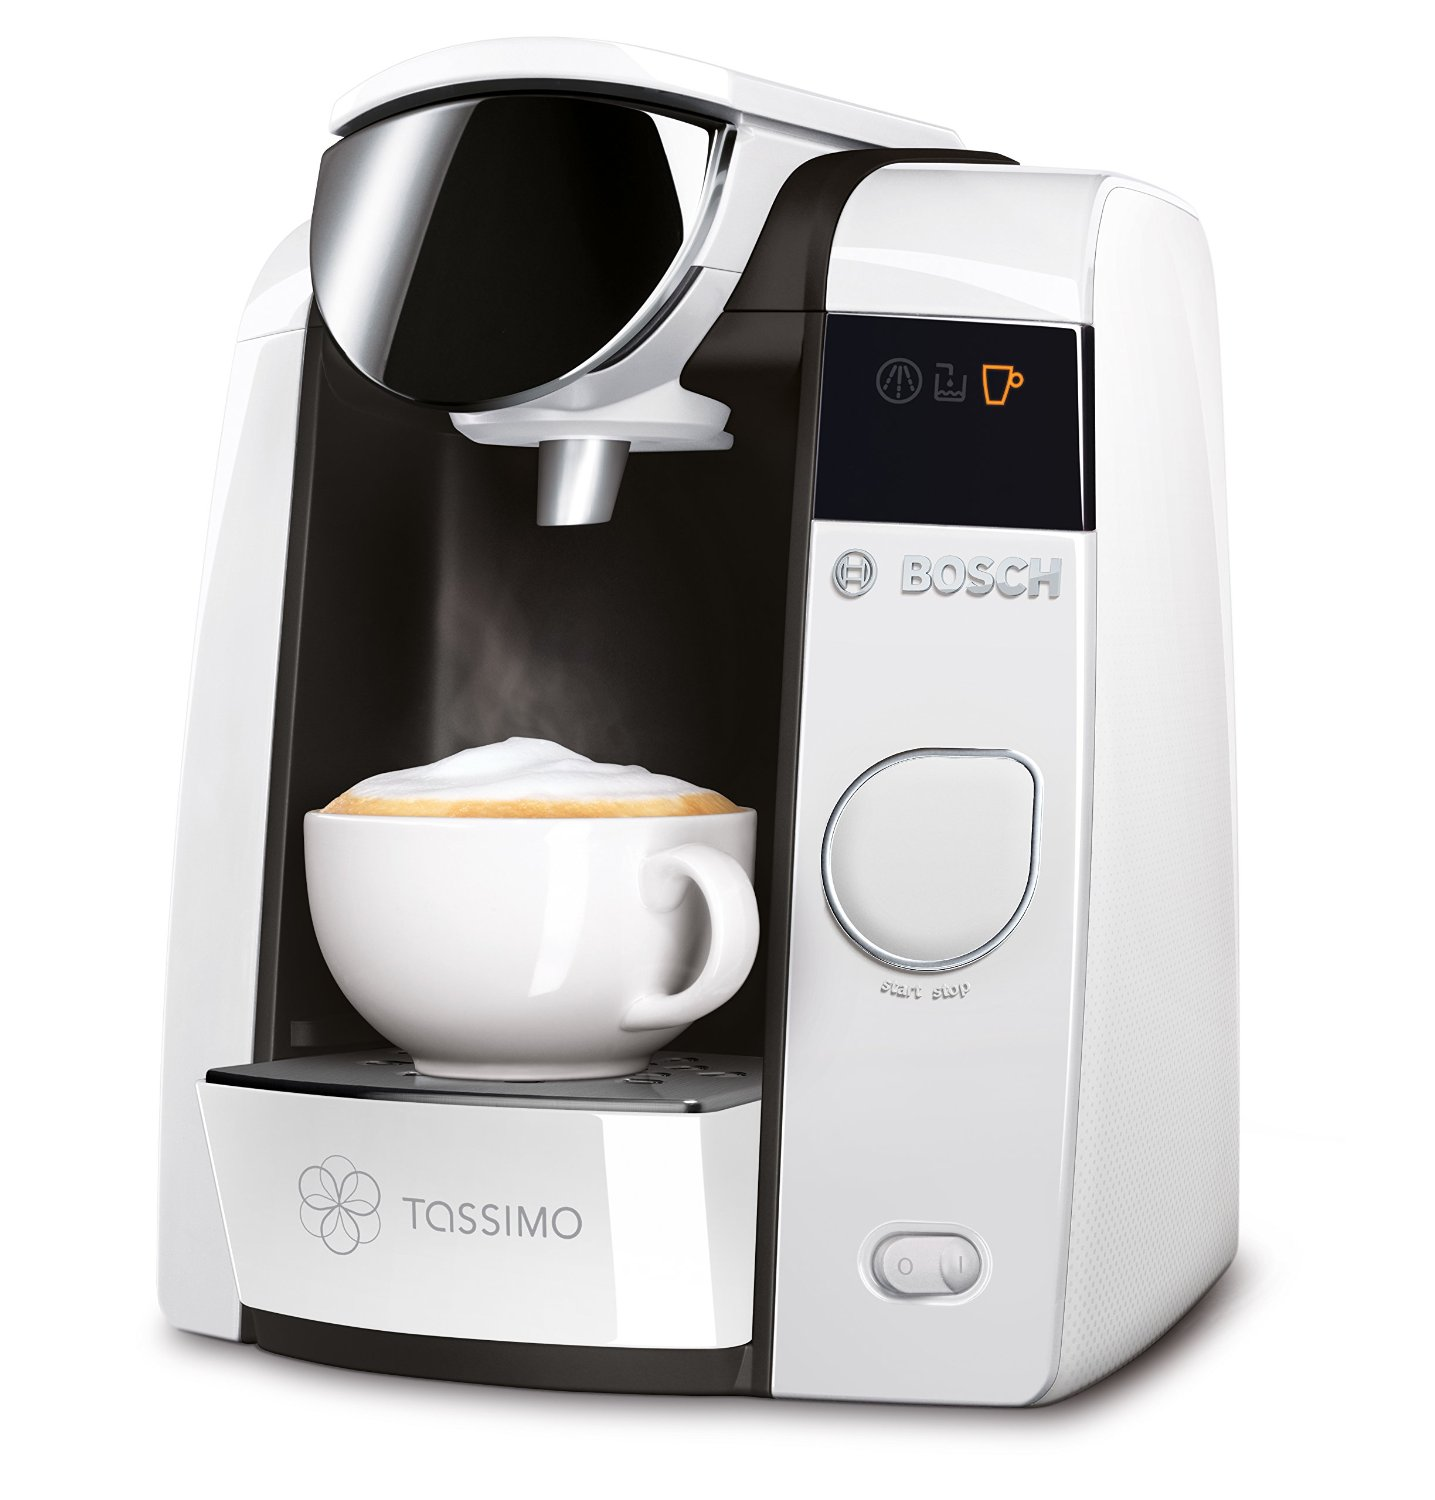 bosch tassimo joy 2 t45 multi drinks pod machine tas4504gb. Black Bedroom Furniture Sets. Home Design Ideas